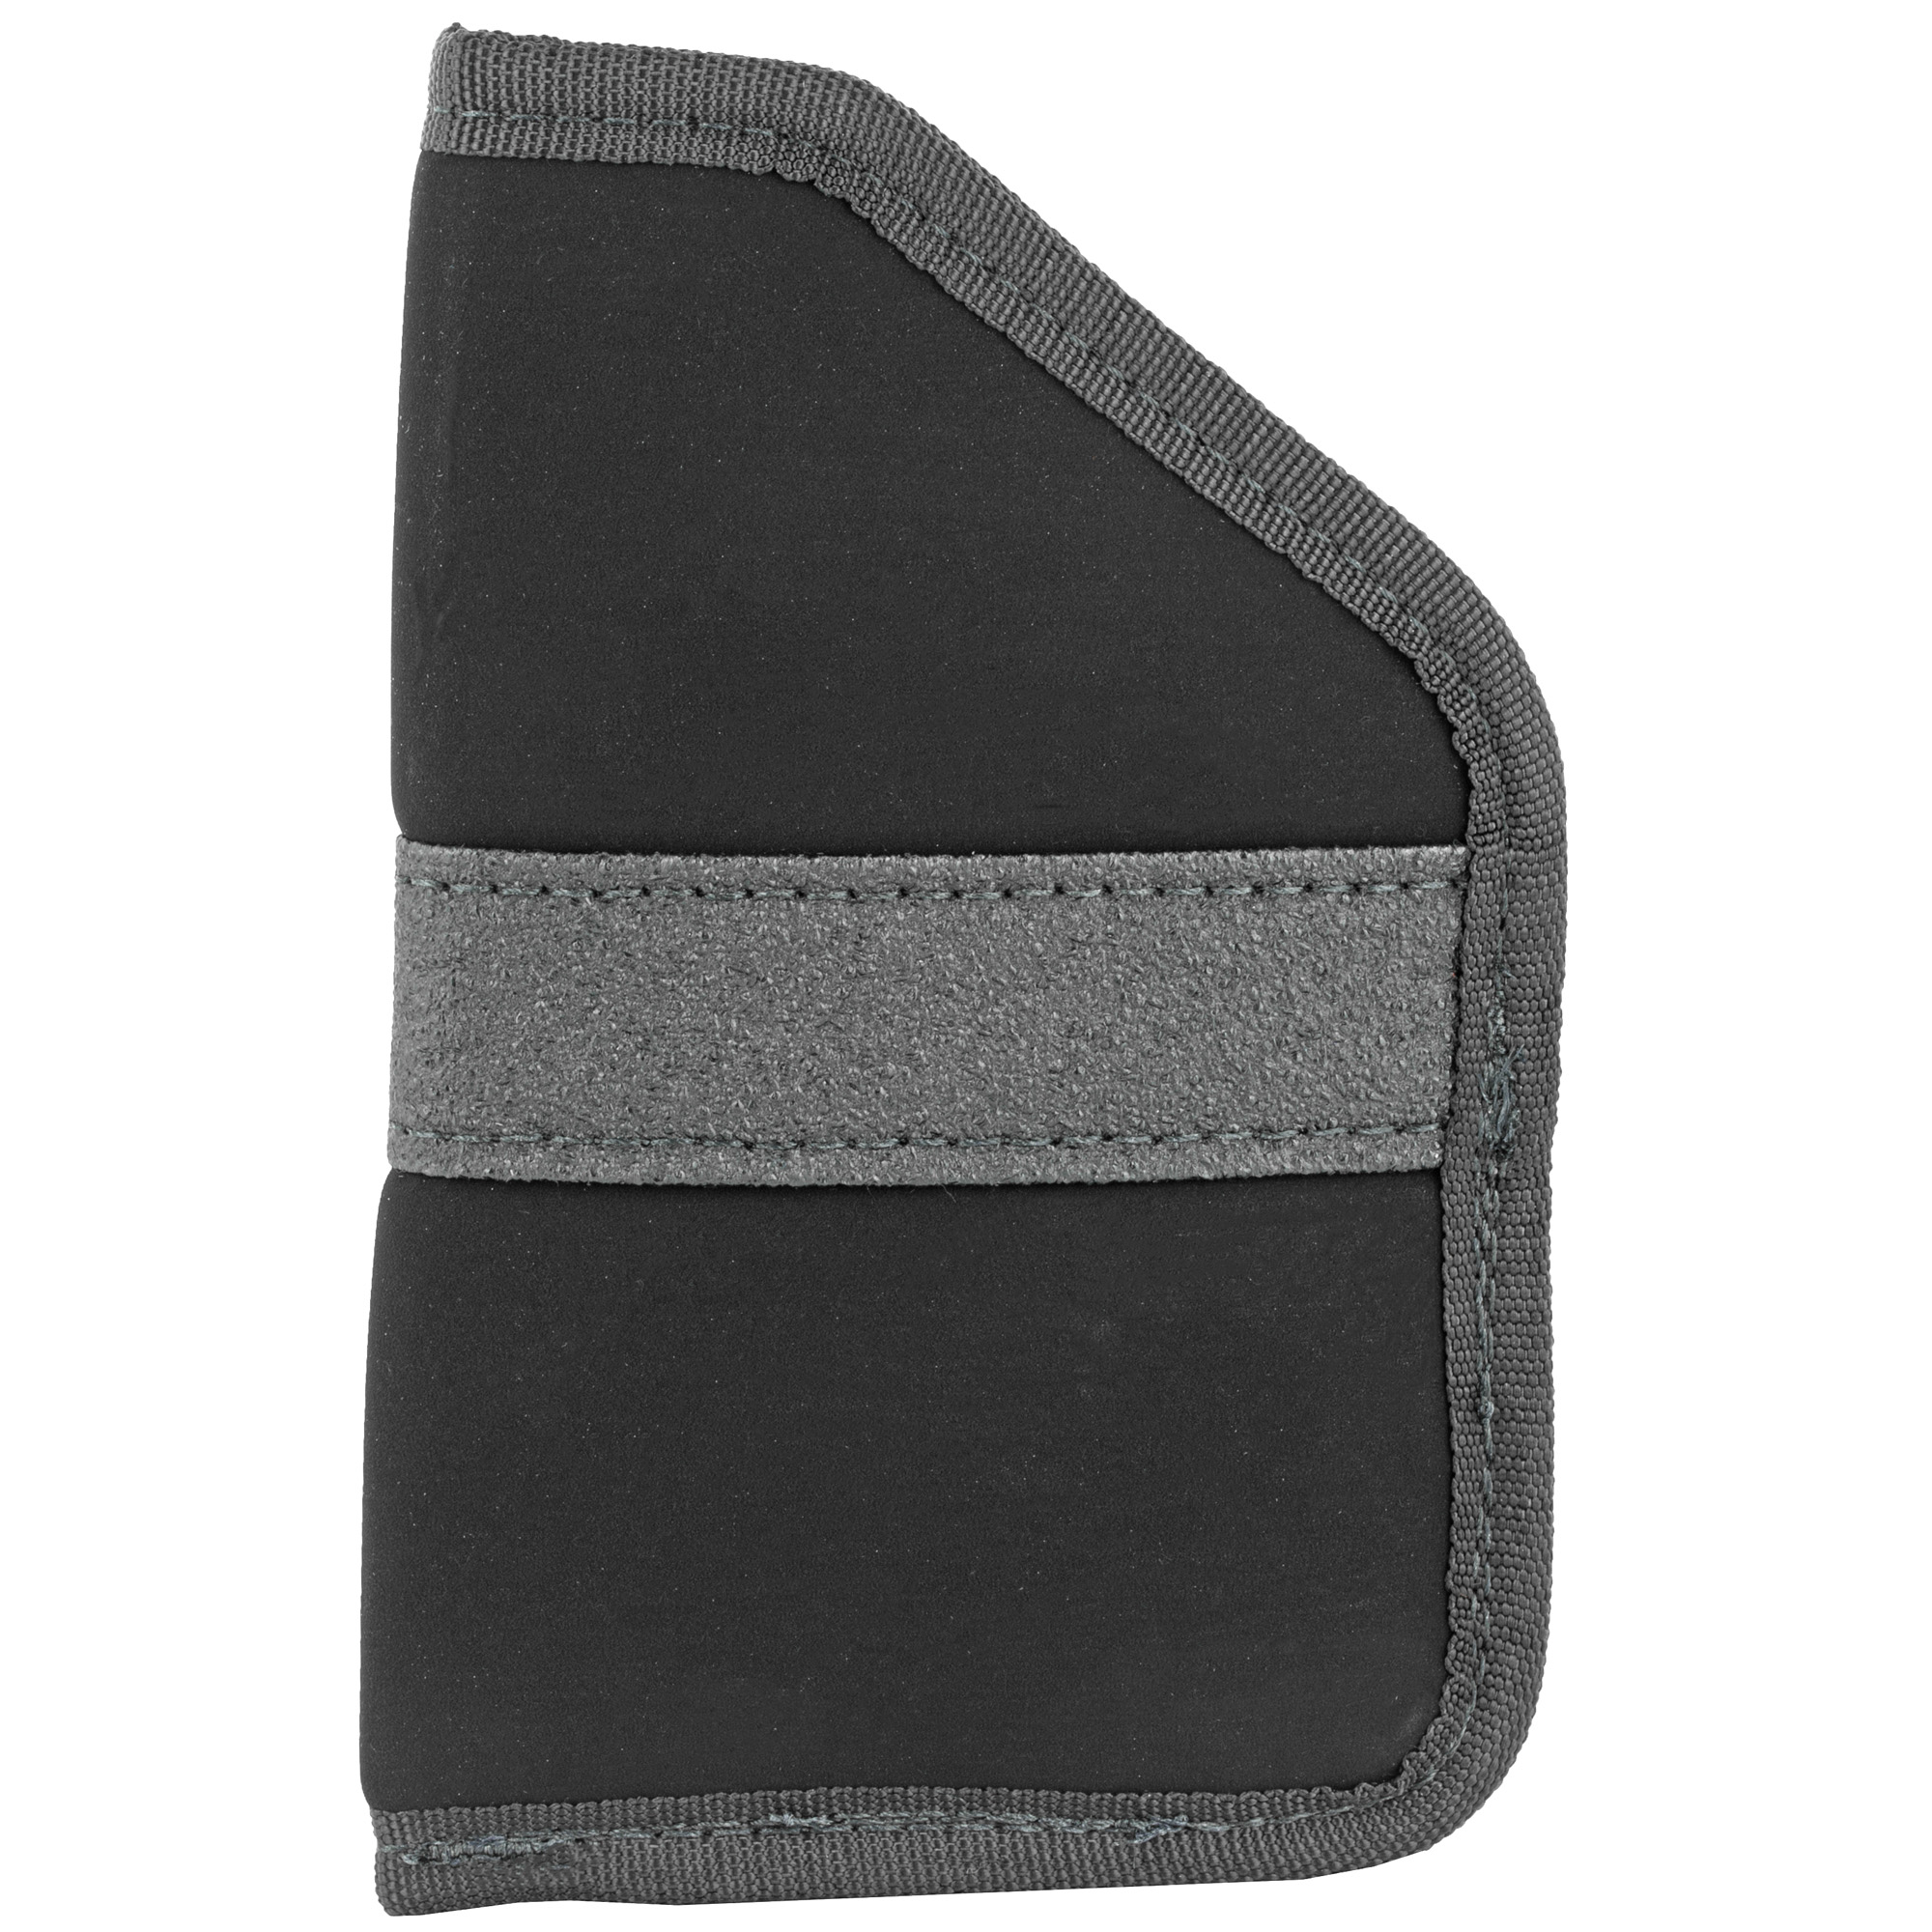 The low-profile laminate construction of this inside the pocket holster protects wearer's skin from weapon's sharp edges and provides a moisture barrier. The open-top holster provides grip-up positioning and protects weapon in pocket and the non-slip band keeps holster in pocket when firearm is drawn.